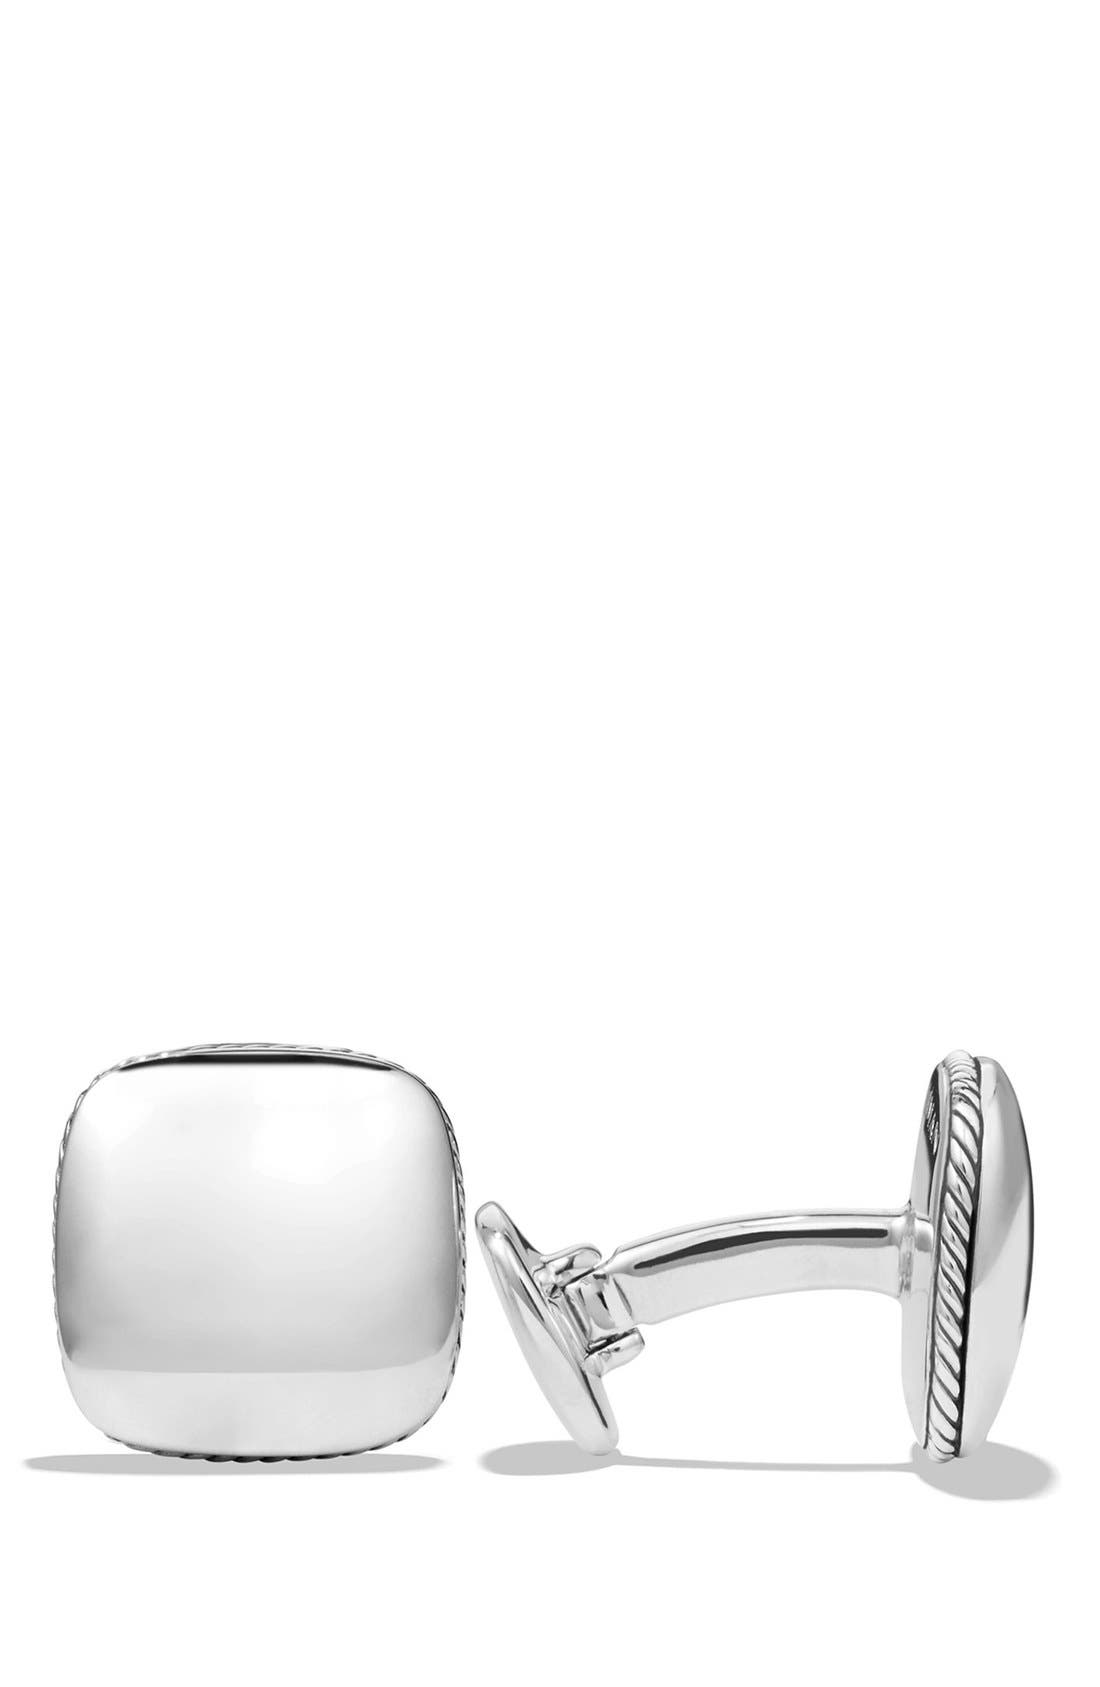 David Yurman 'Streamline' Cuff links